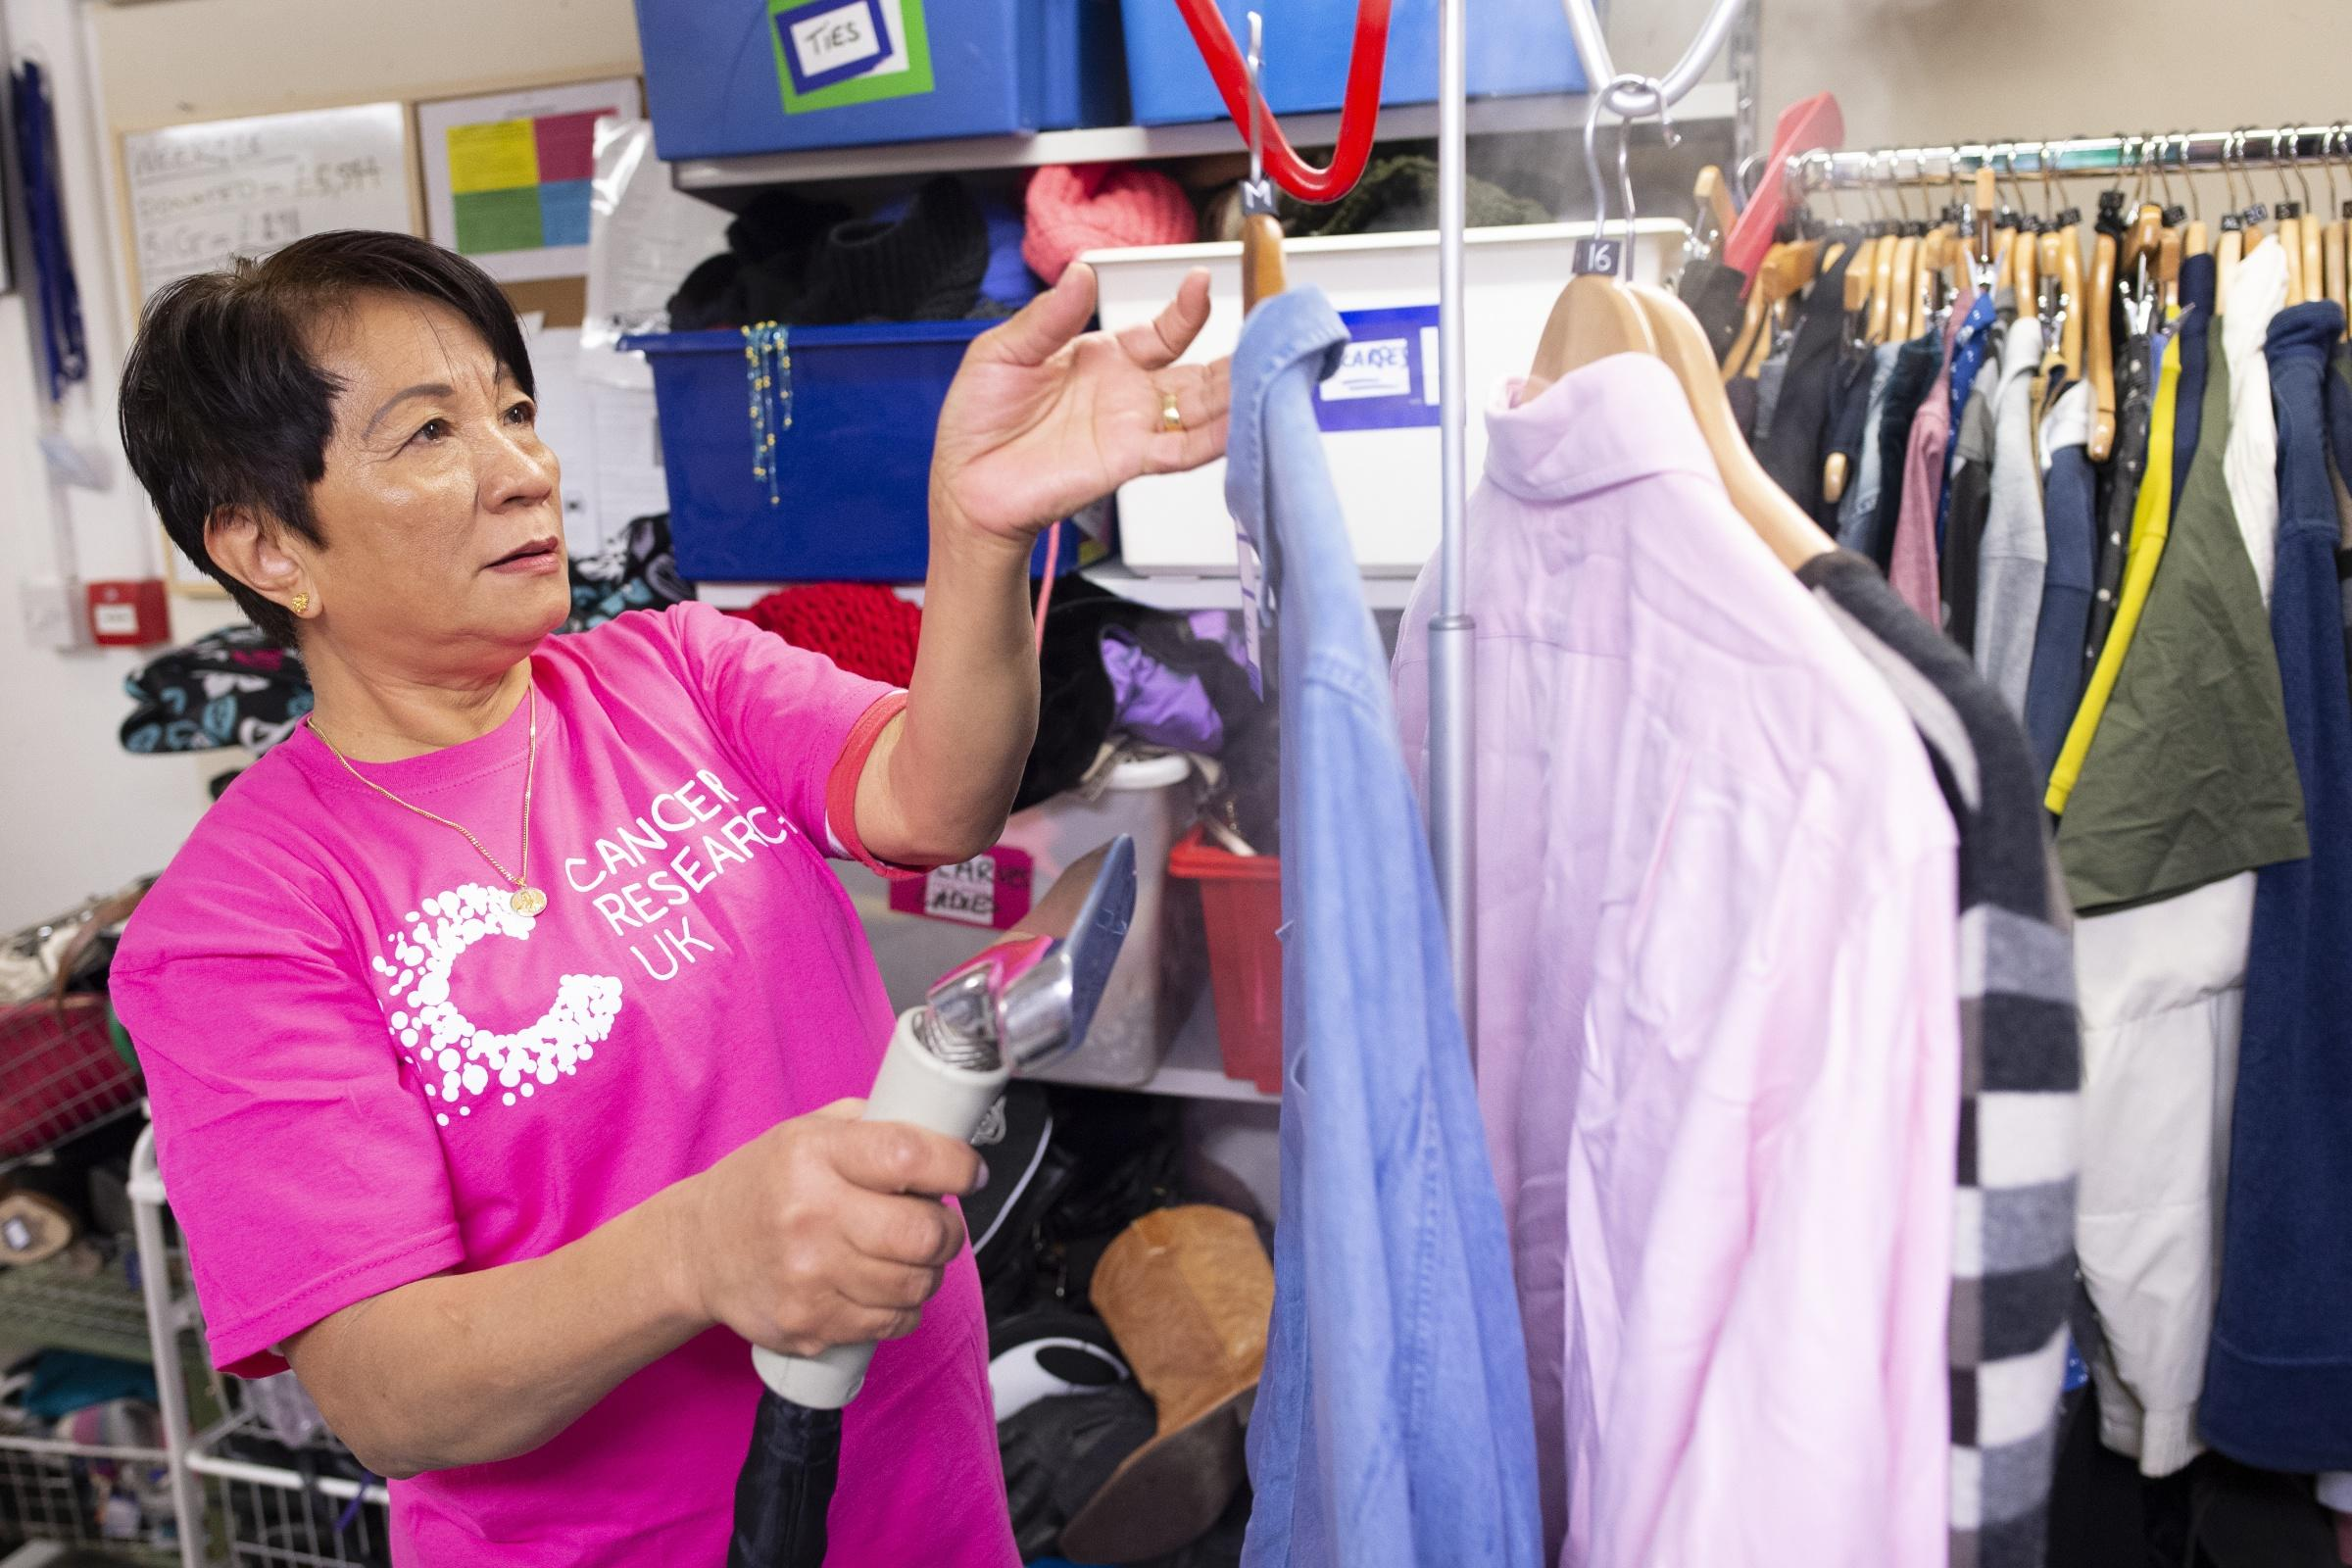 A female volunteer is steaming clothes in one of our shops, she is wearing a branded t shirt and looks happy.